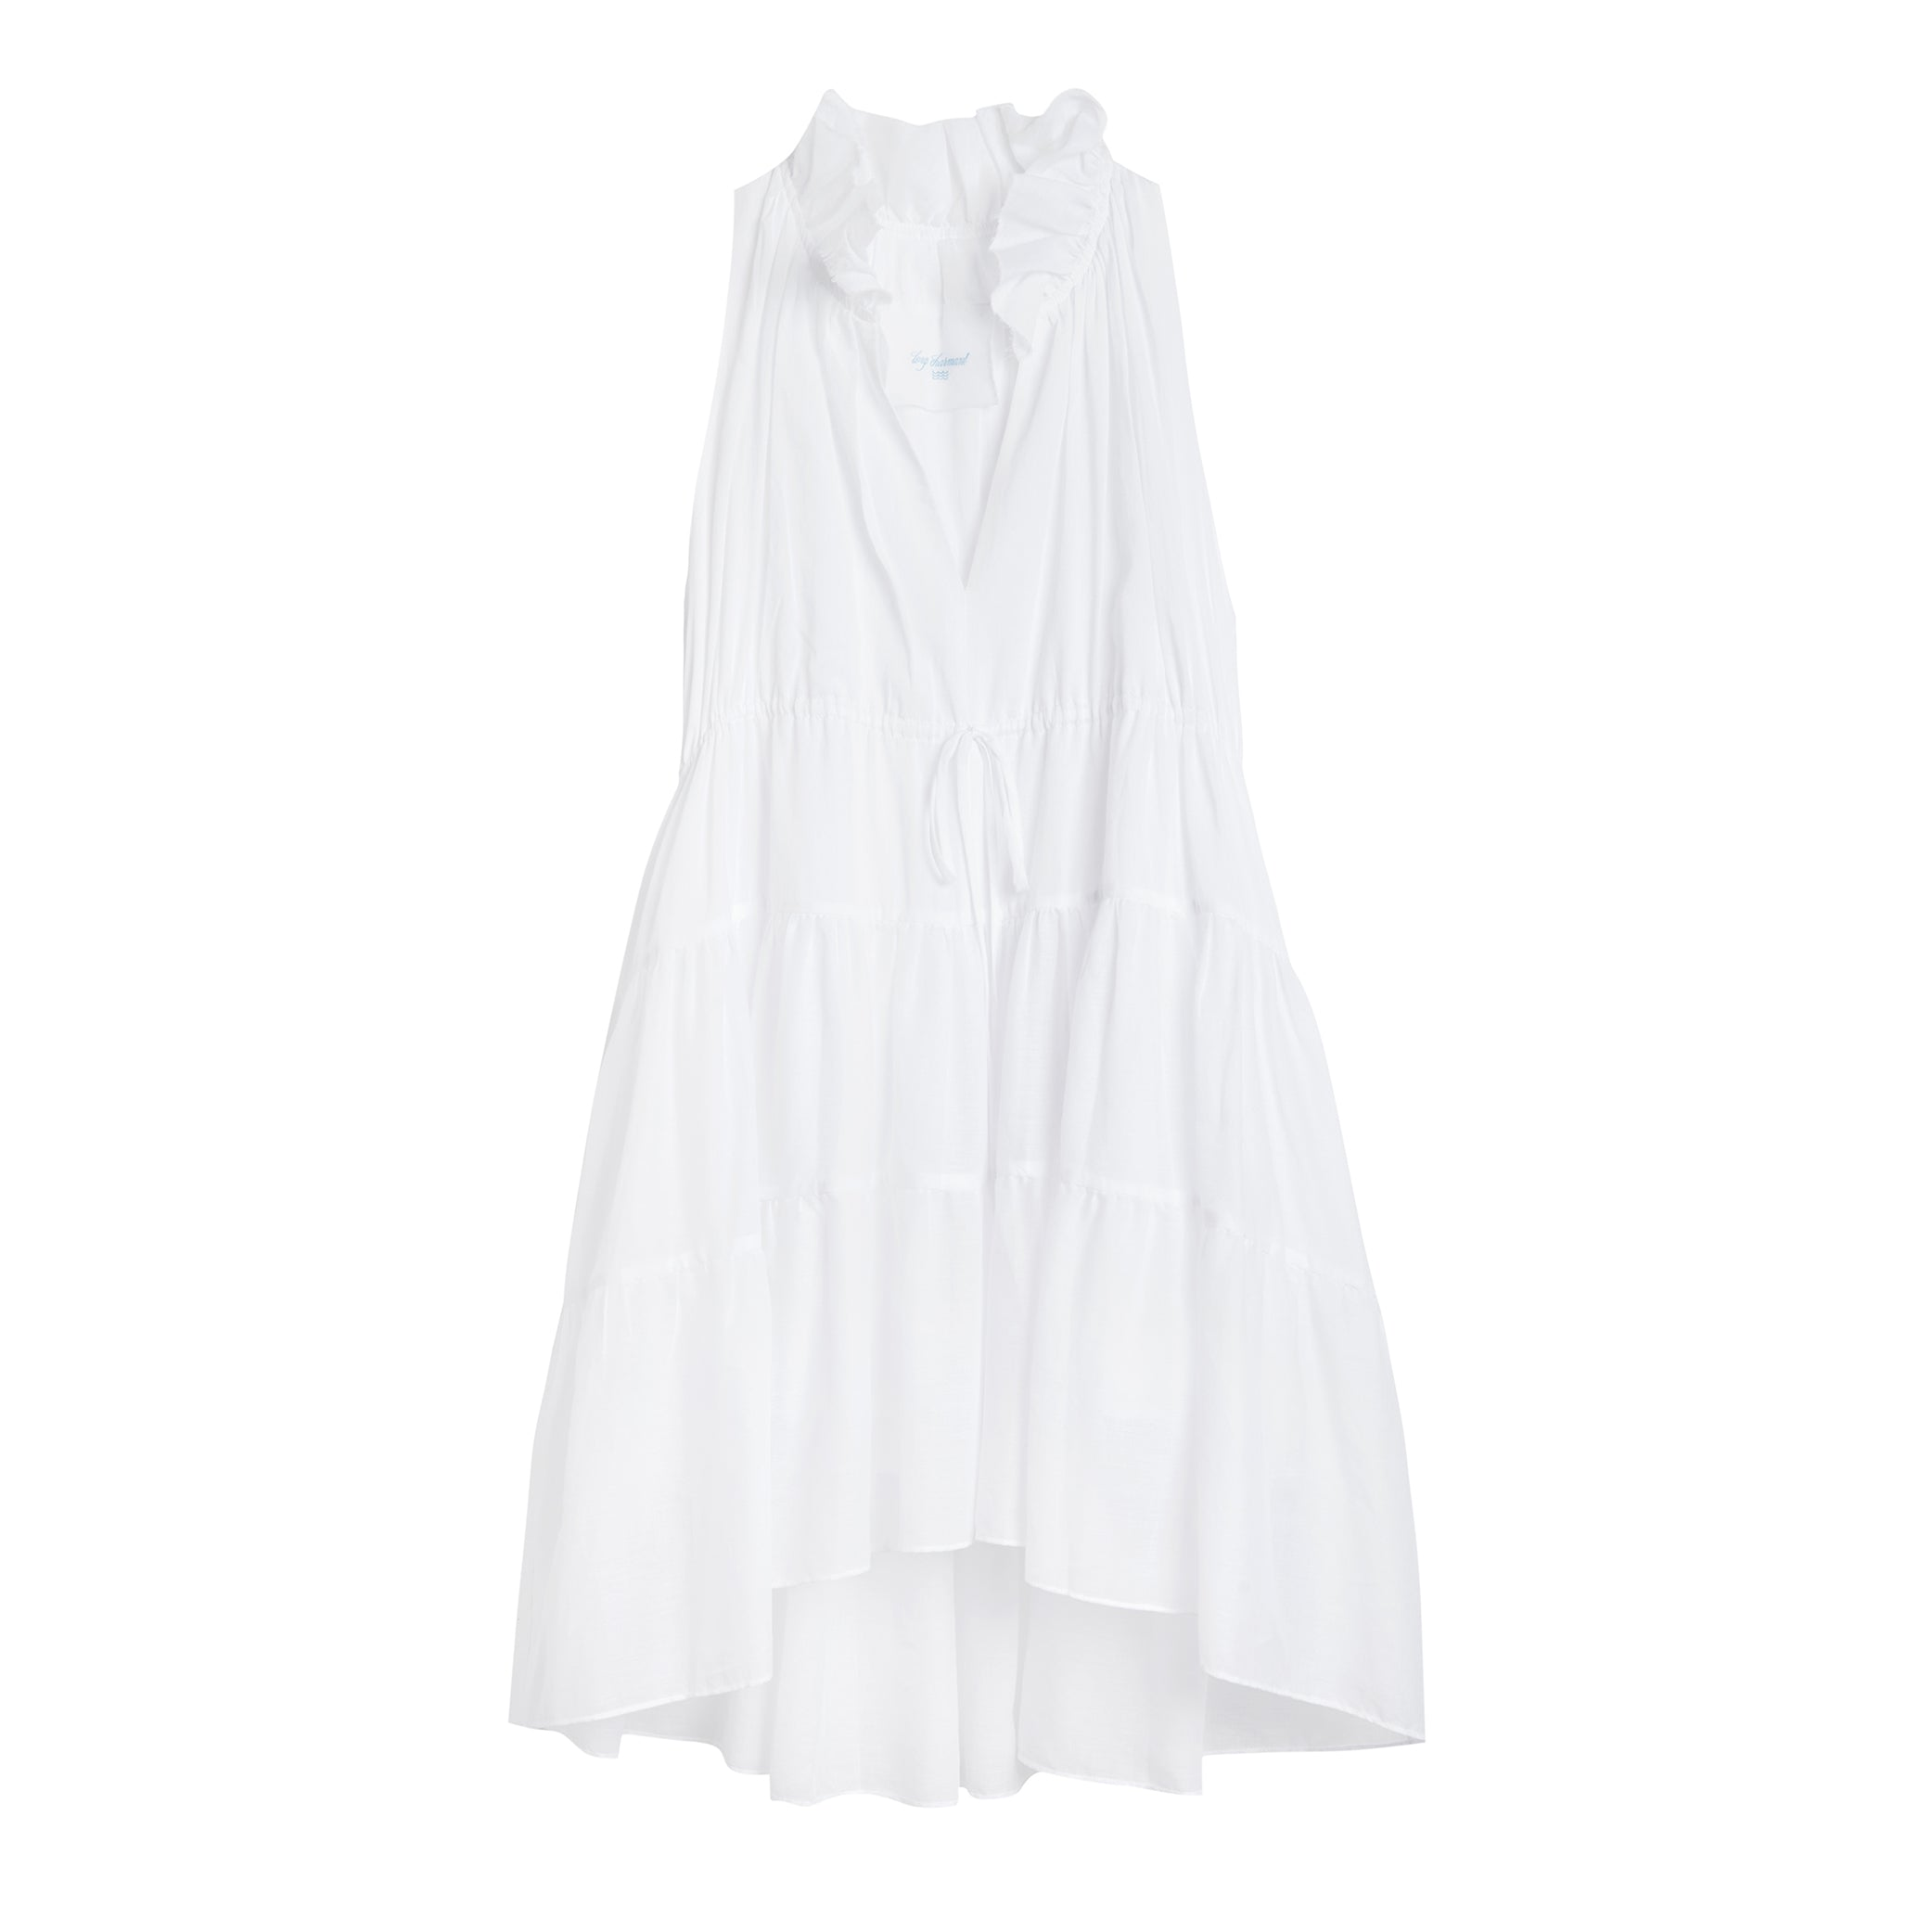 Patmos organic cotton dress